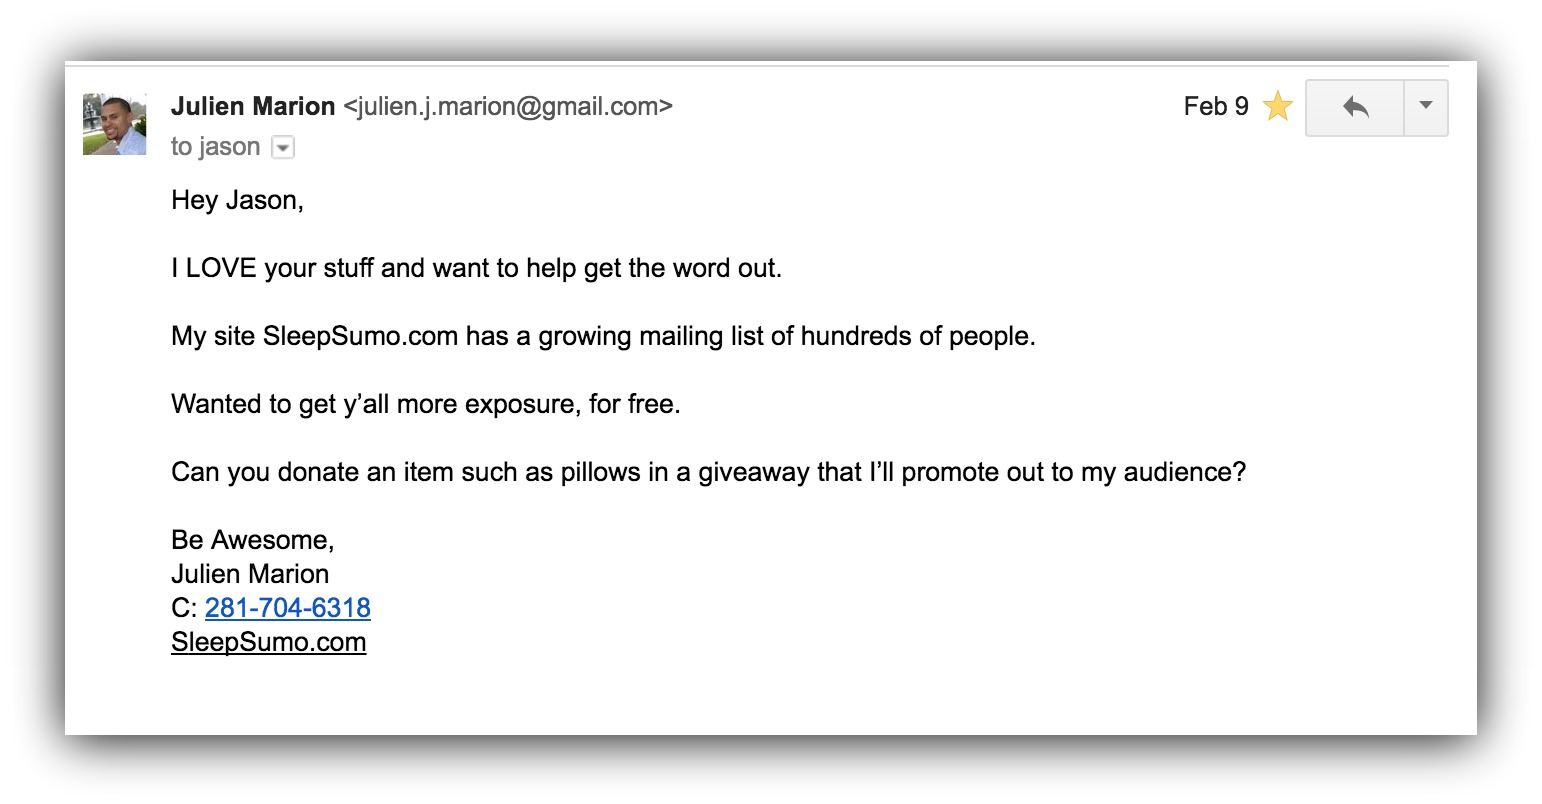 Screenshot of an outreach email for promotion purposes